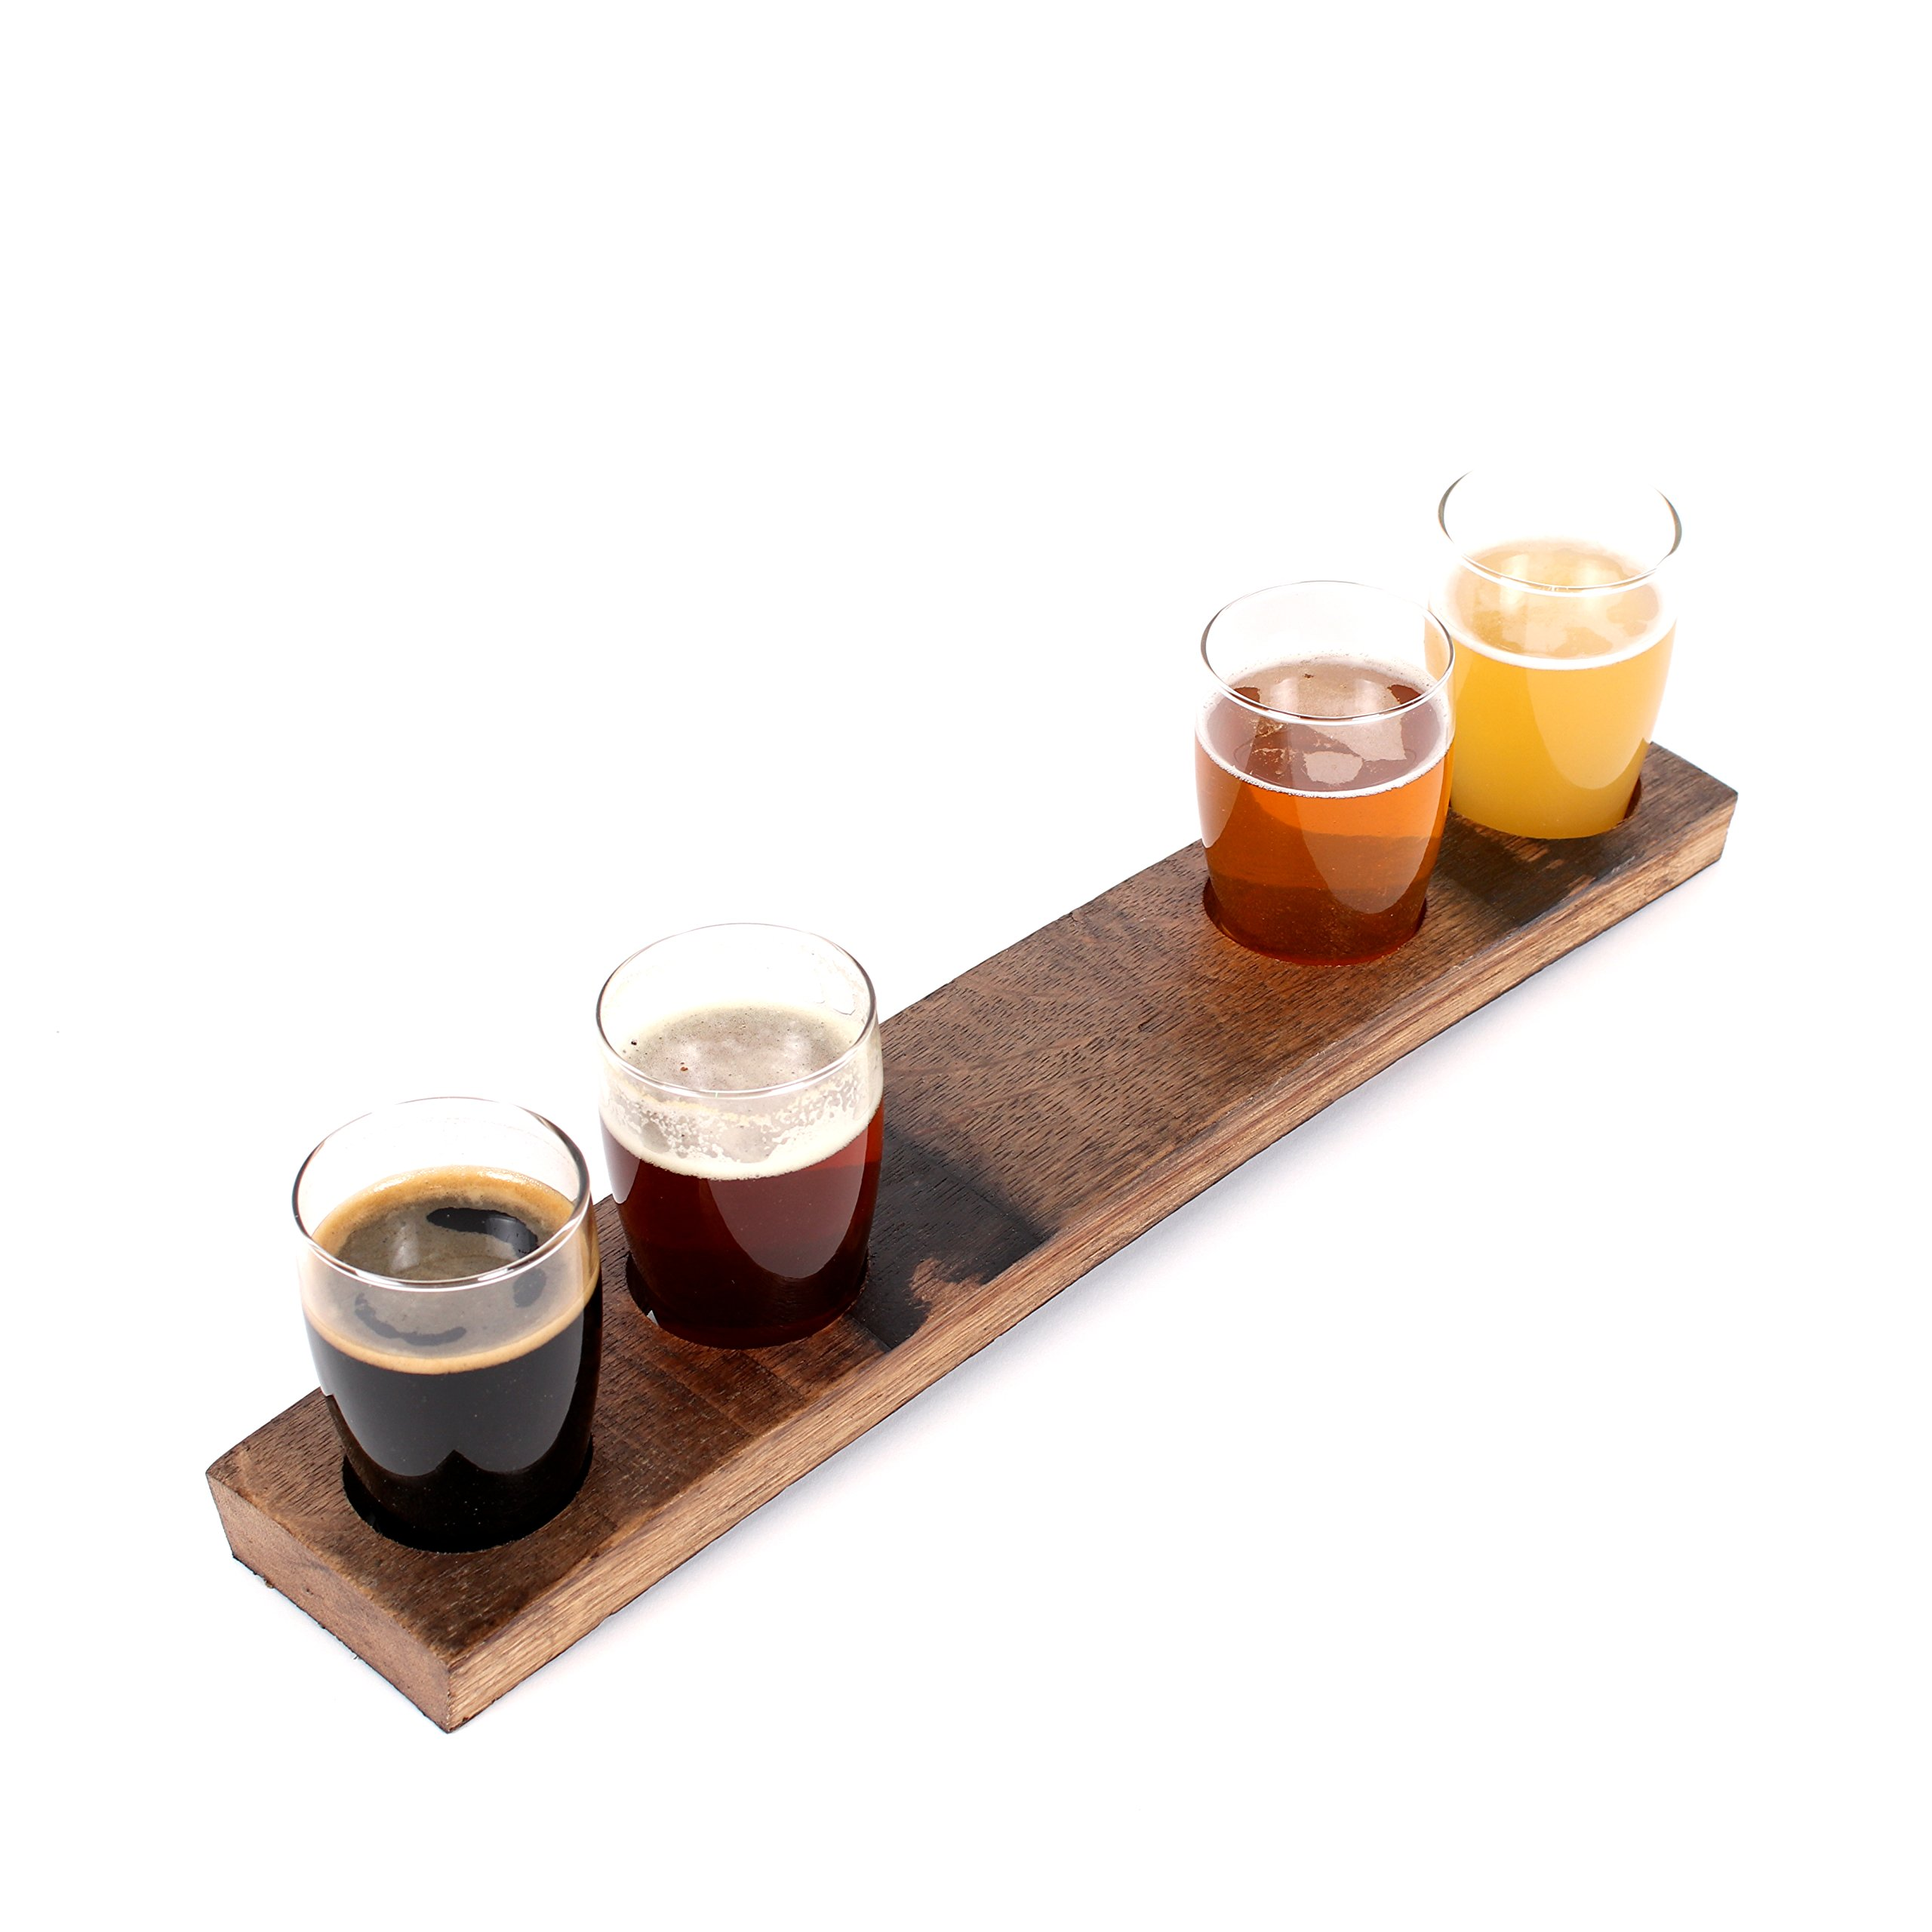 Handcrafted Beer Flight Set and Board | Aged Oak Barrel Beer Serving Tray |For Beer Lovers, Homebrewers, Professional Bars, and Breweries | Beer Flight Paddle and Beer Tasting Glasses or Standalone